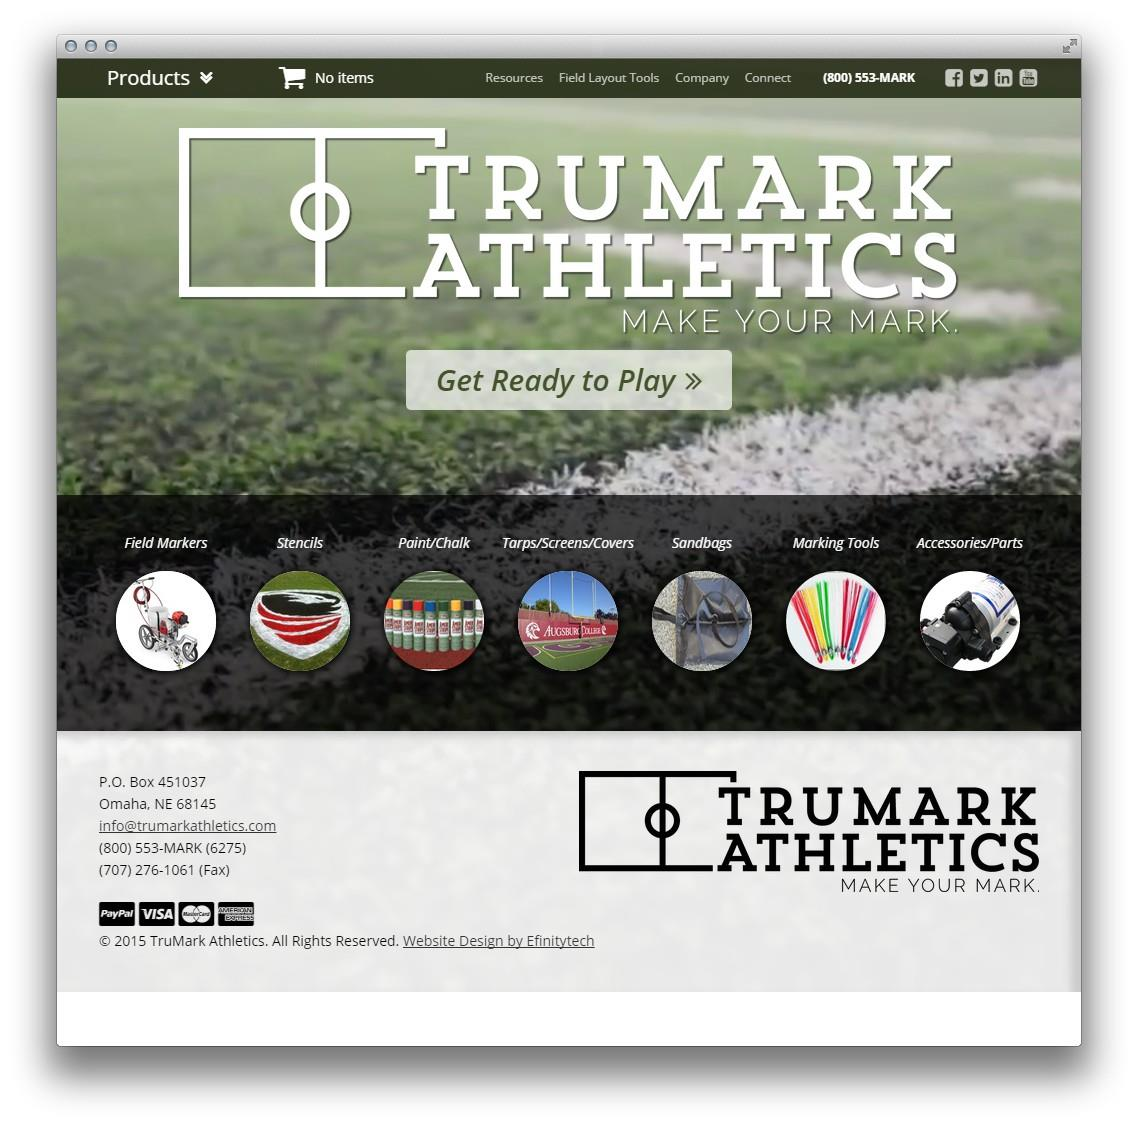 Trumark Athletics Website Design